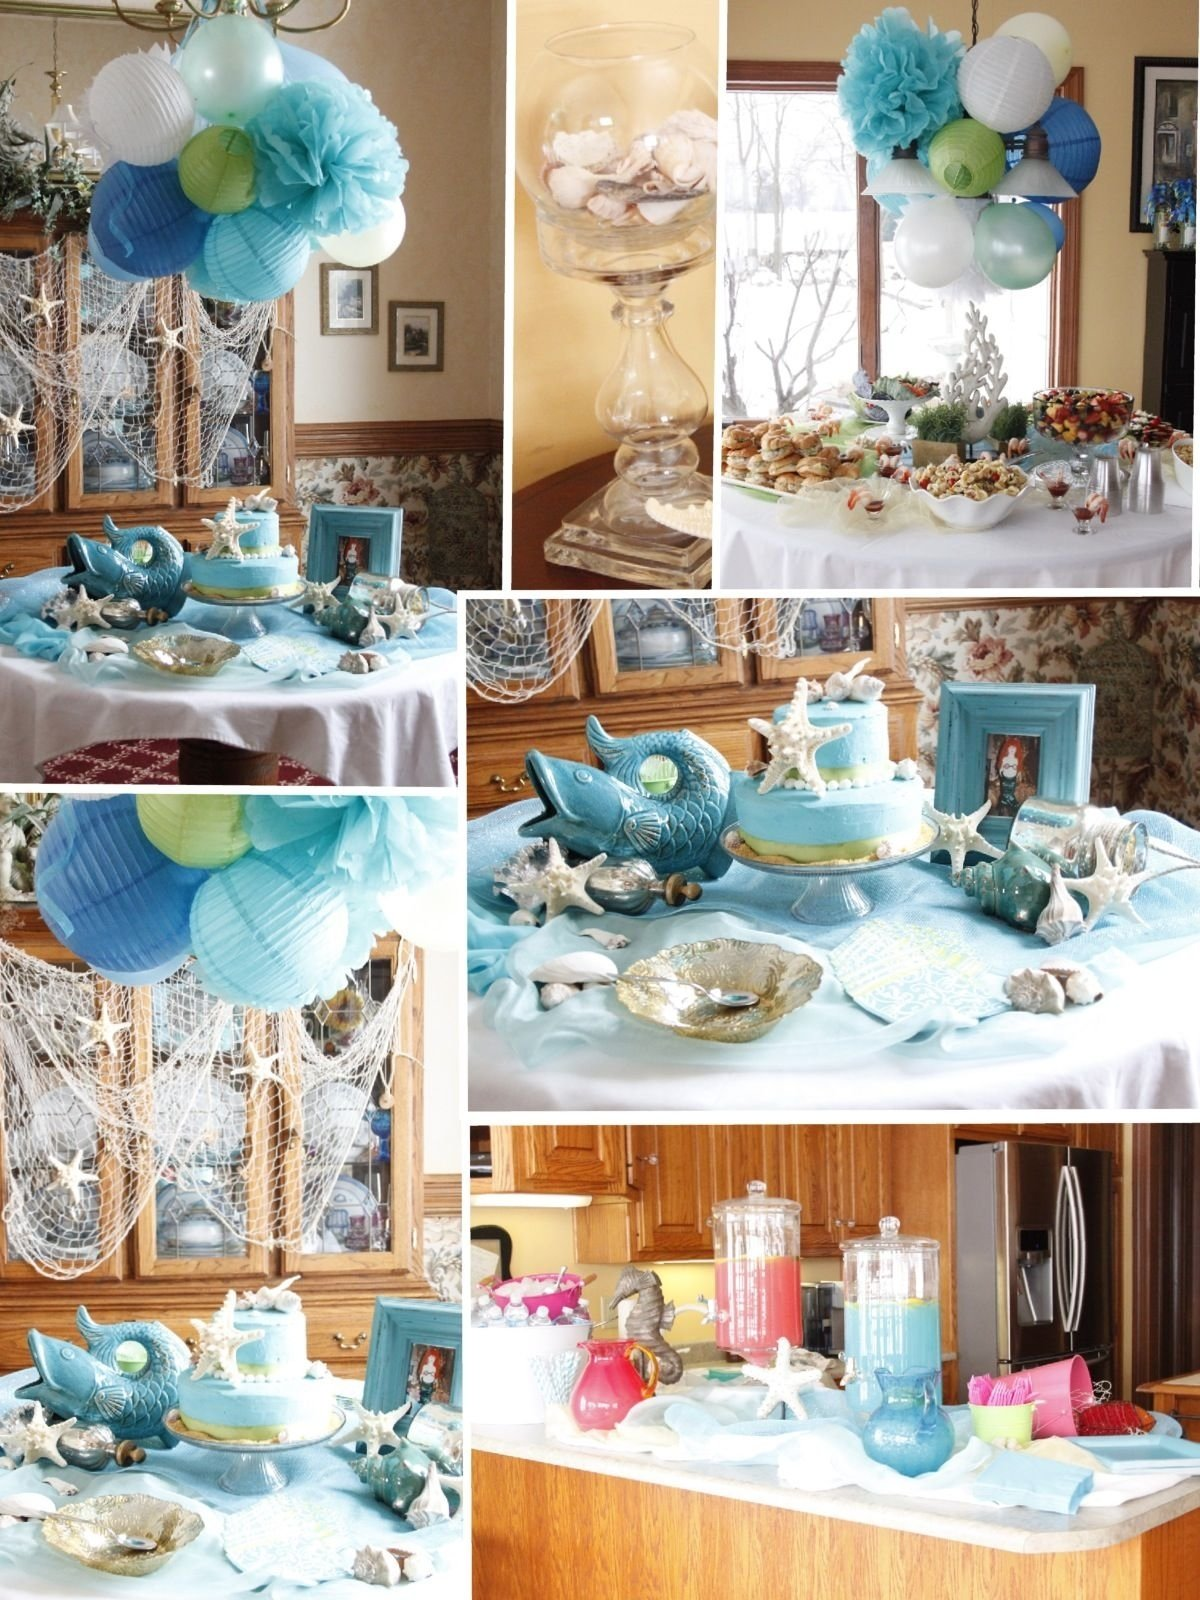 10 Great Beach Theme Bridal Shower Ideas